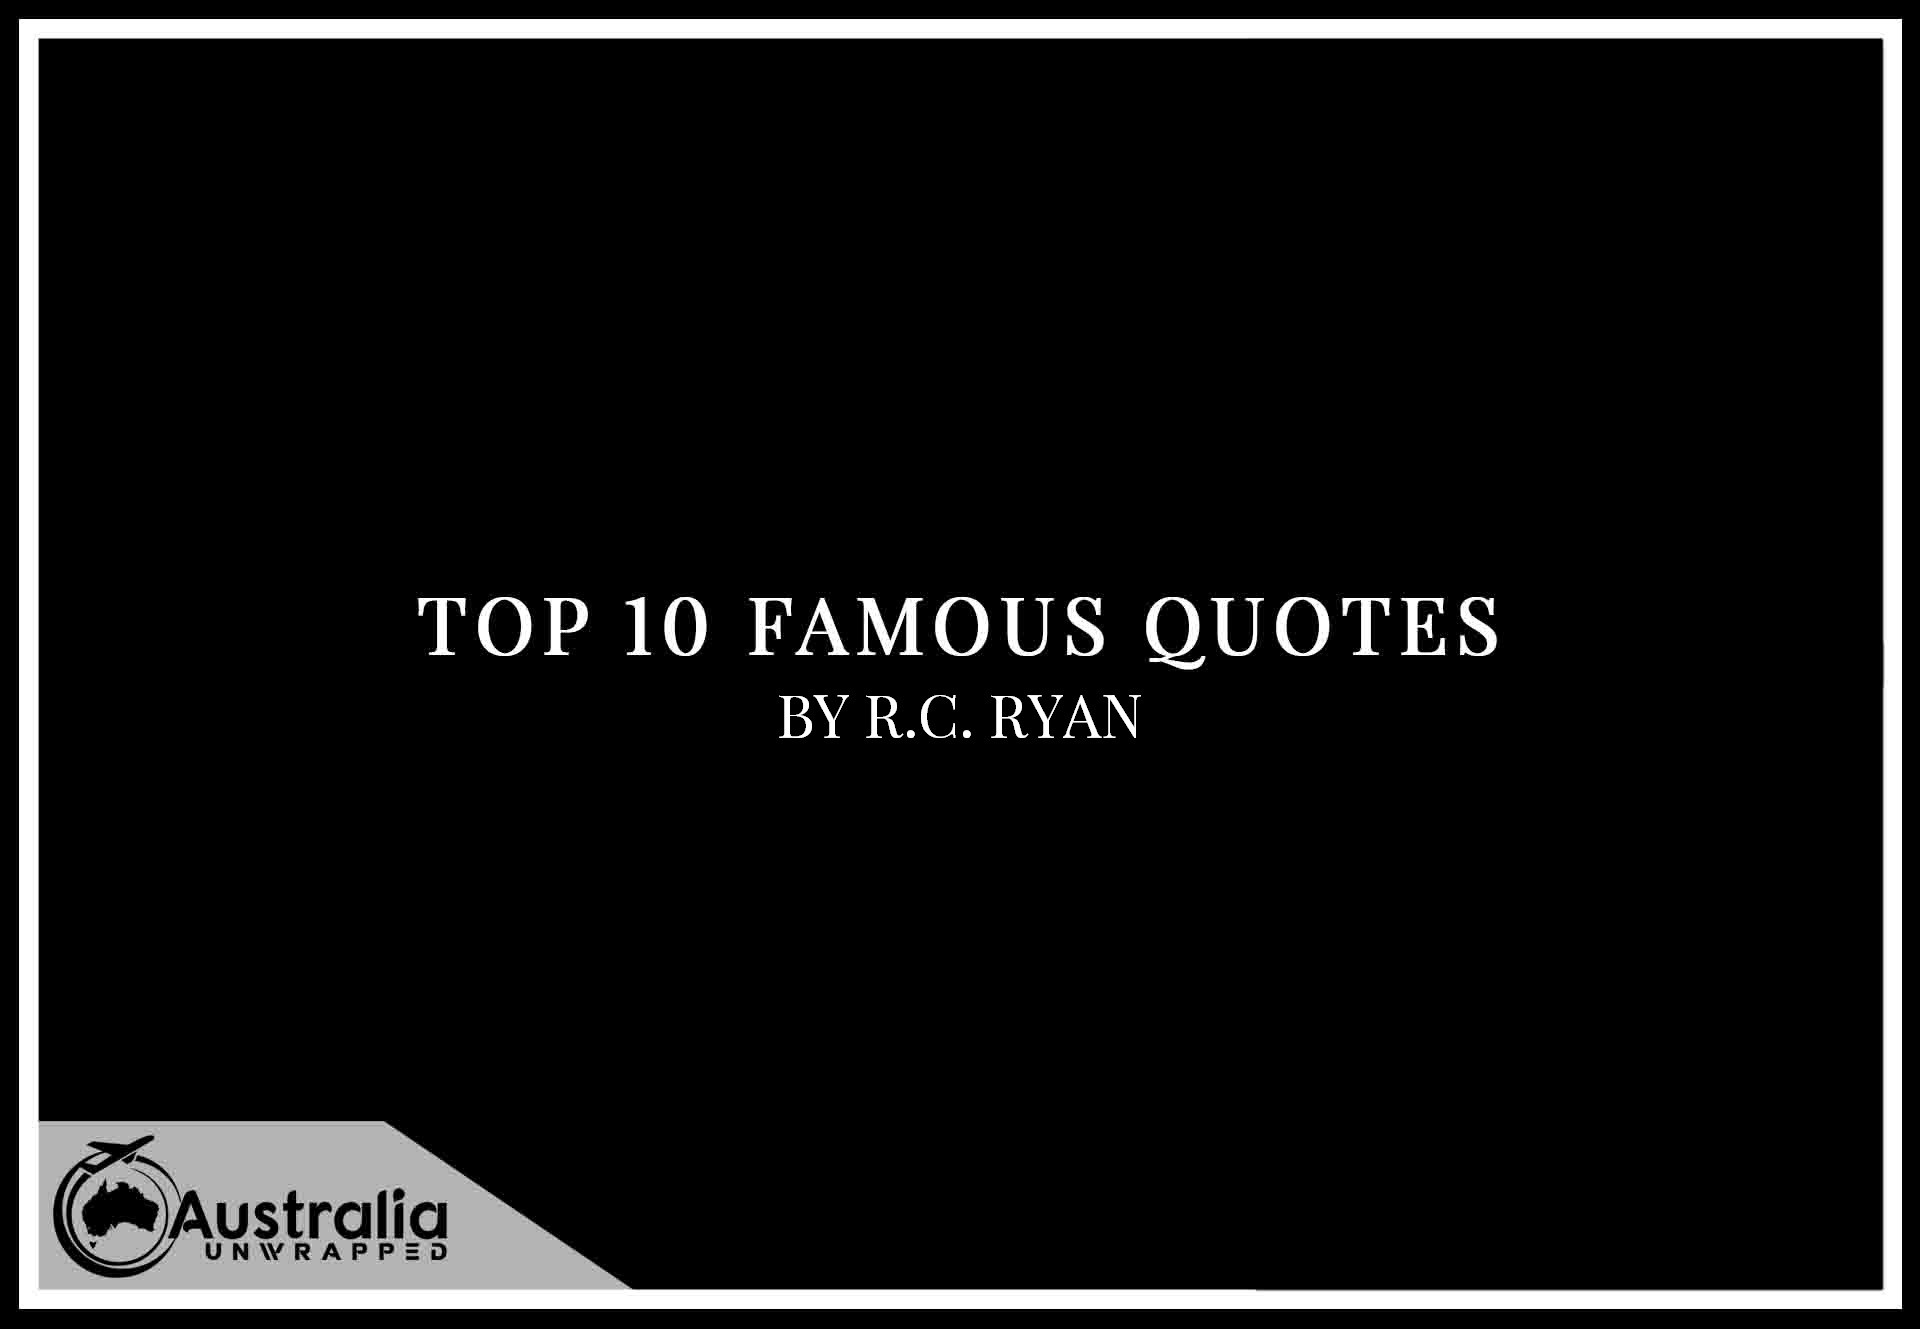 Top 10 Famous Quotes by Author R.C. Ryan